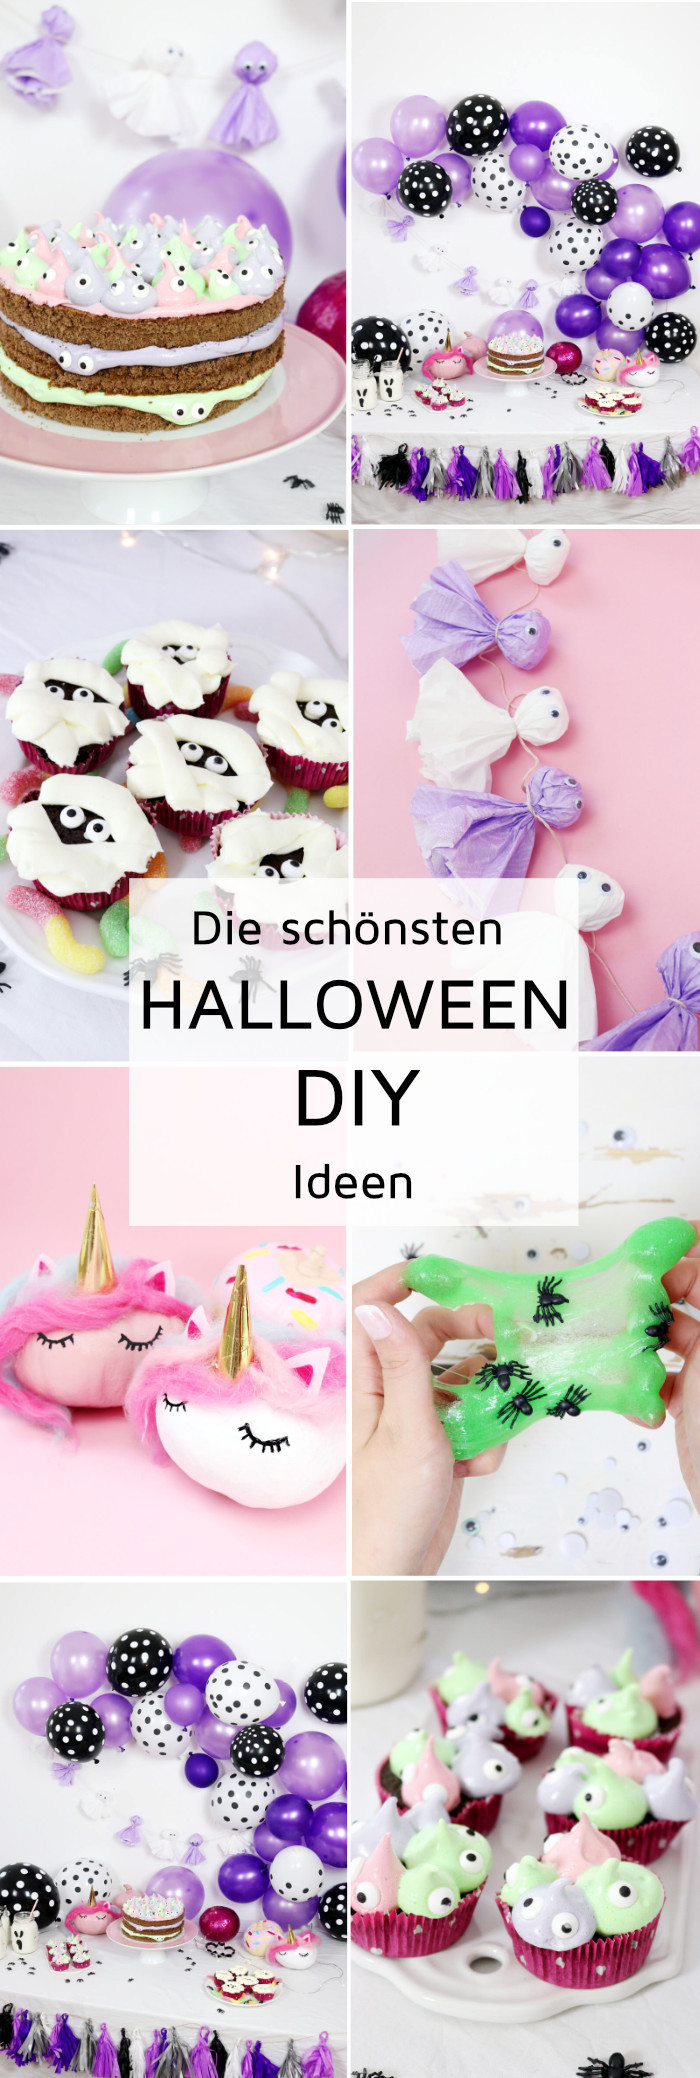 halloween deko selber machen die besten diy halloween party ideen. Black Bedroom Furniture Sets. Home Design Ideas